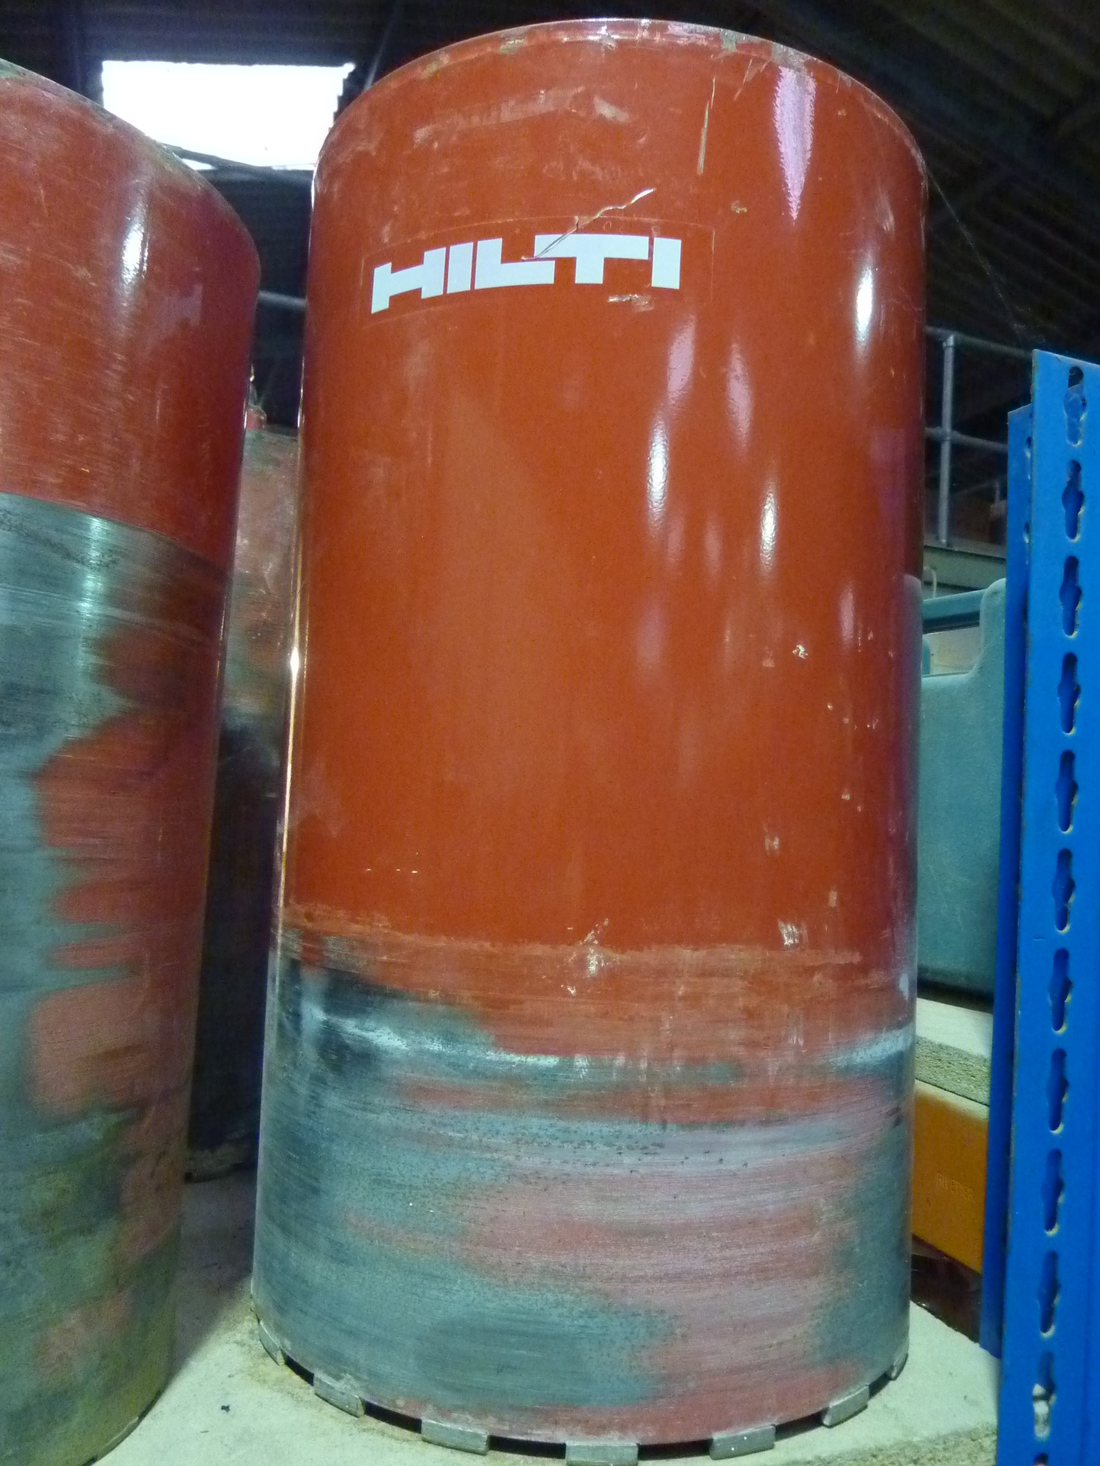 Hilti DD130 Wet Diamond Core 62mm